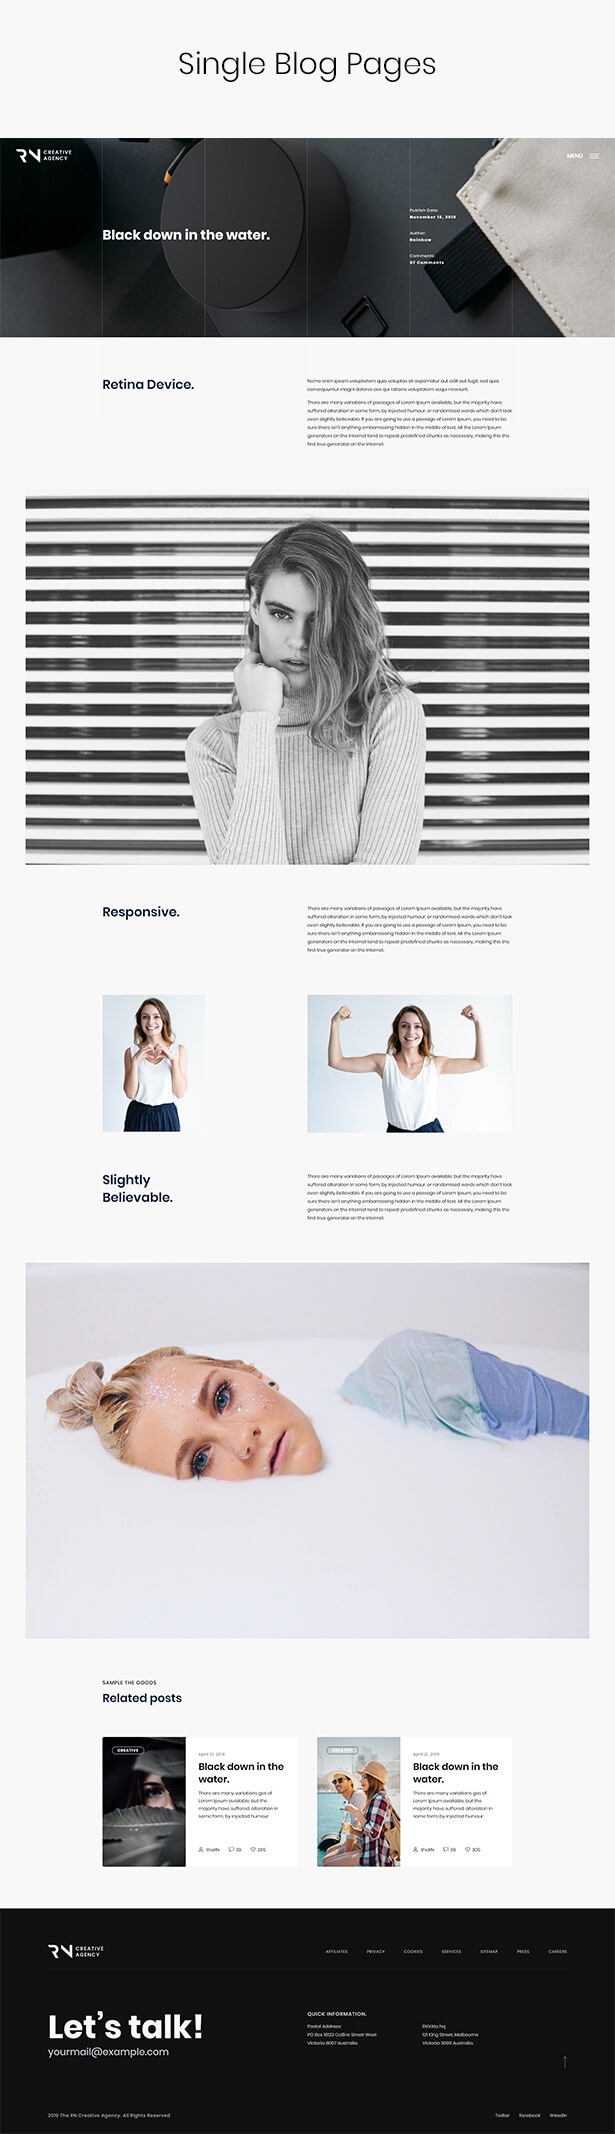 TheRN - Creative Agency HTML5 Template - 8